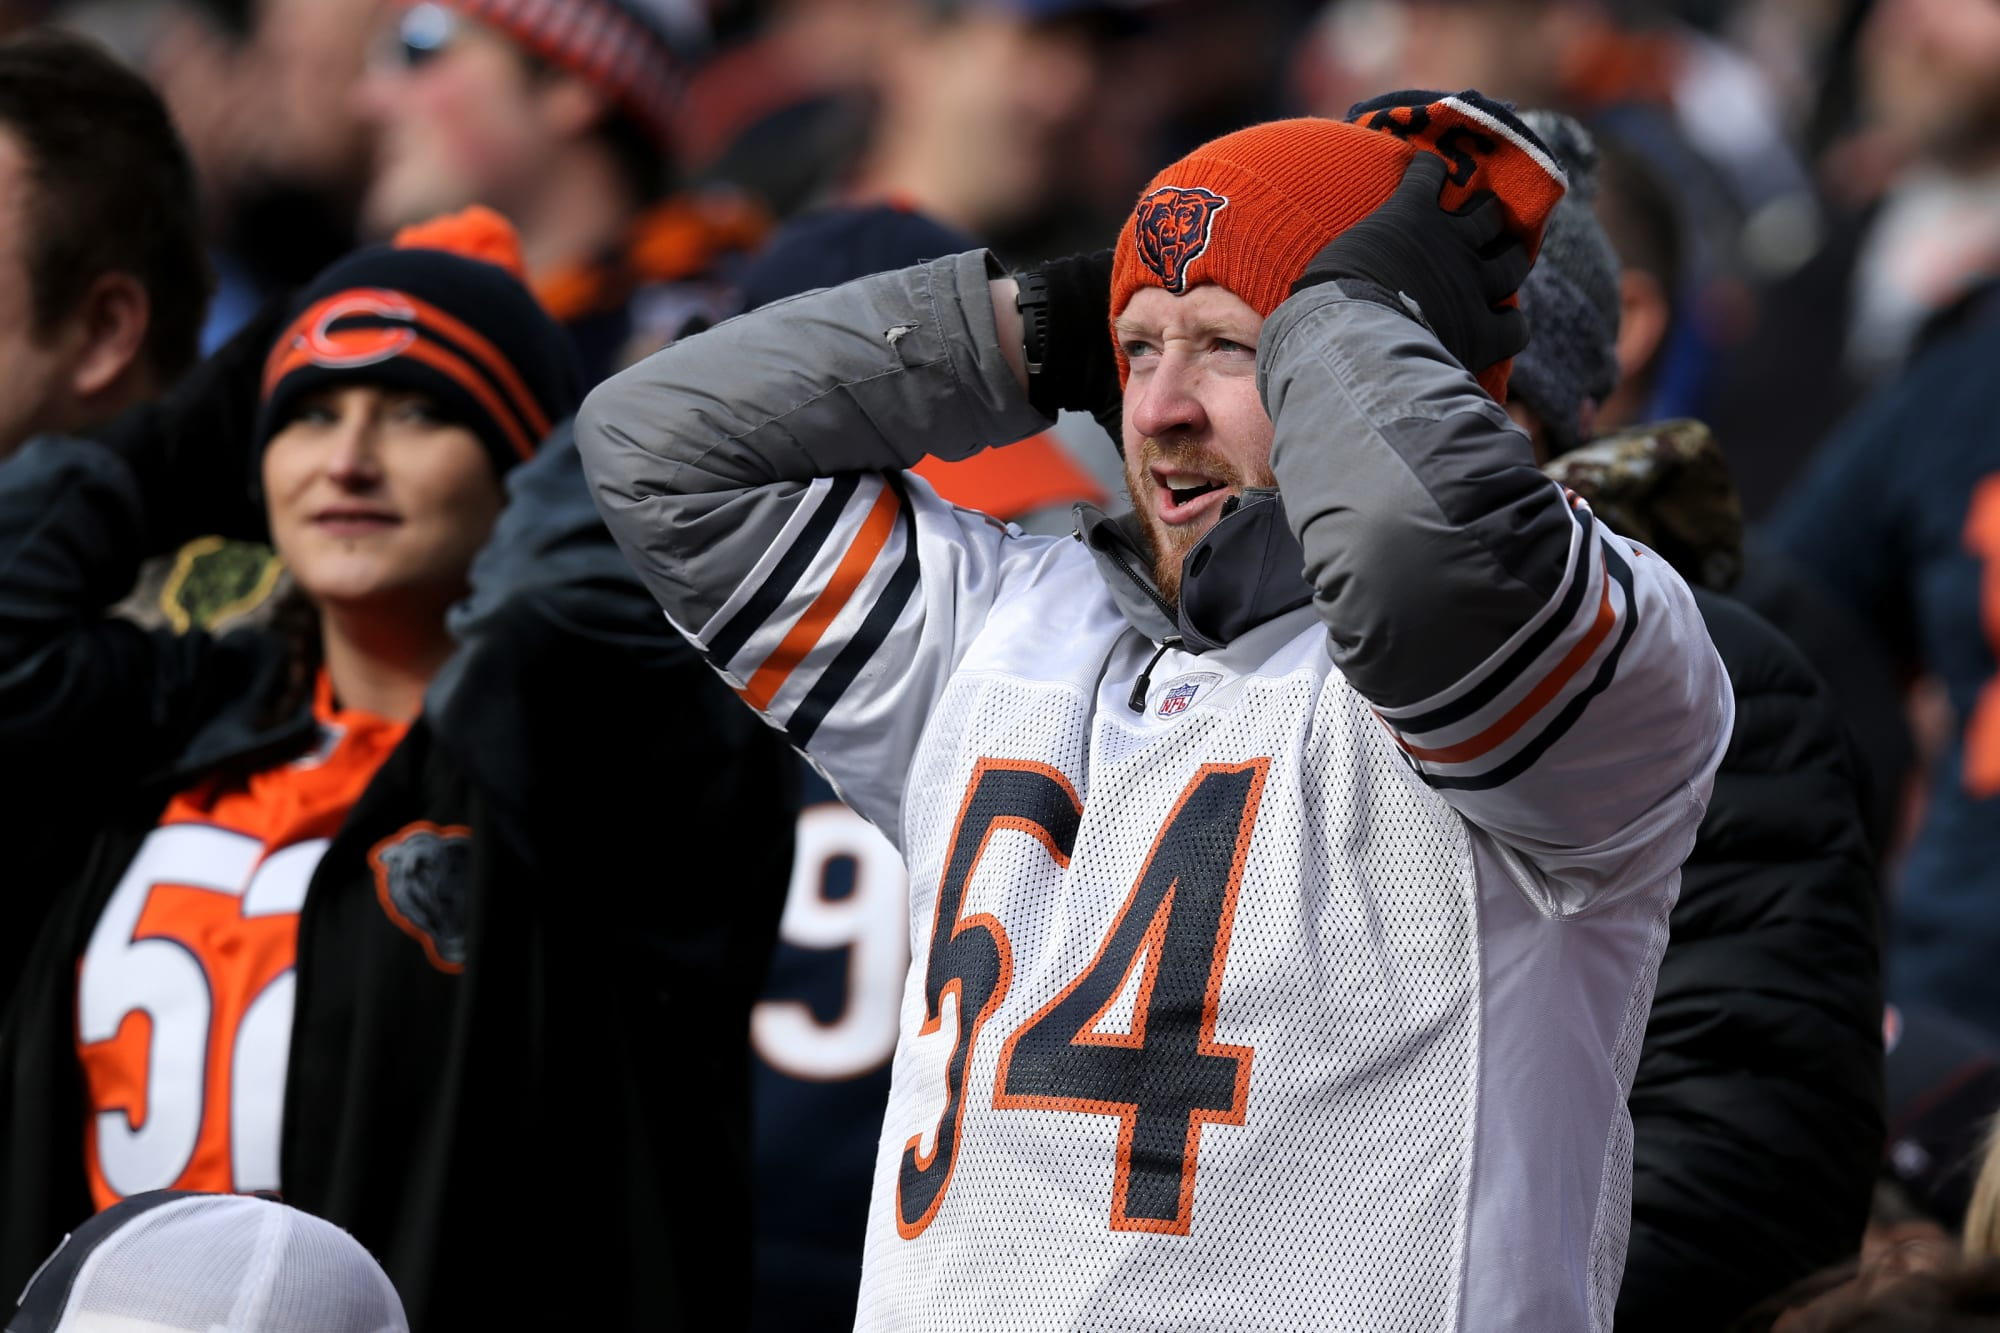 Chicago Bears take one step closer to relocating to suburbs